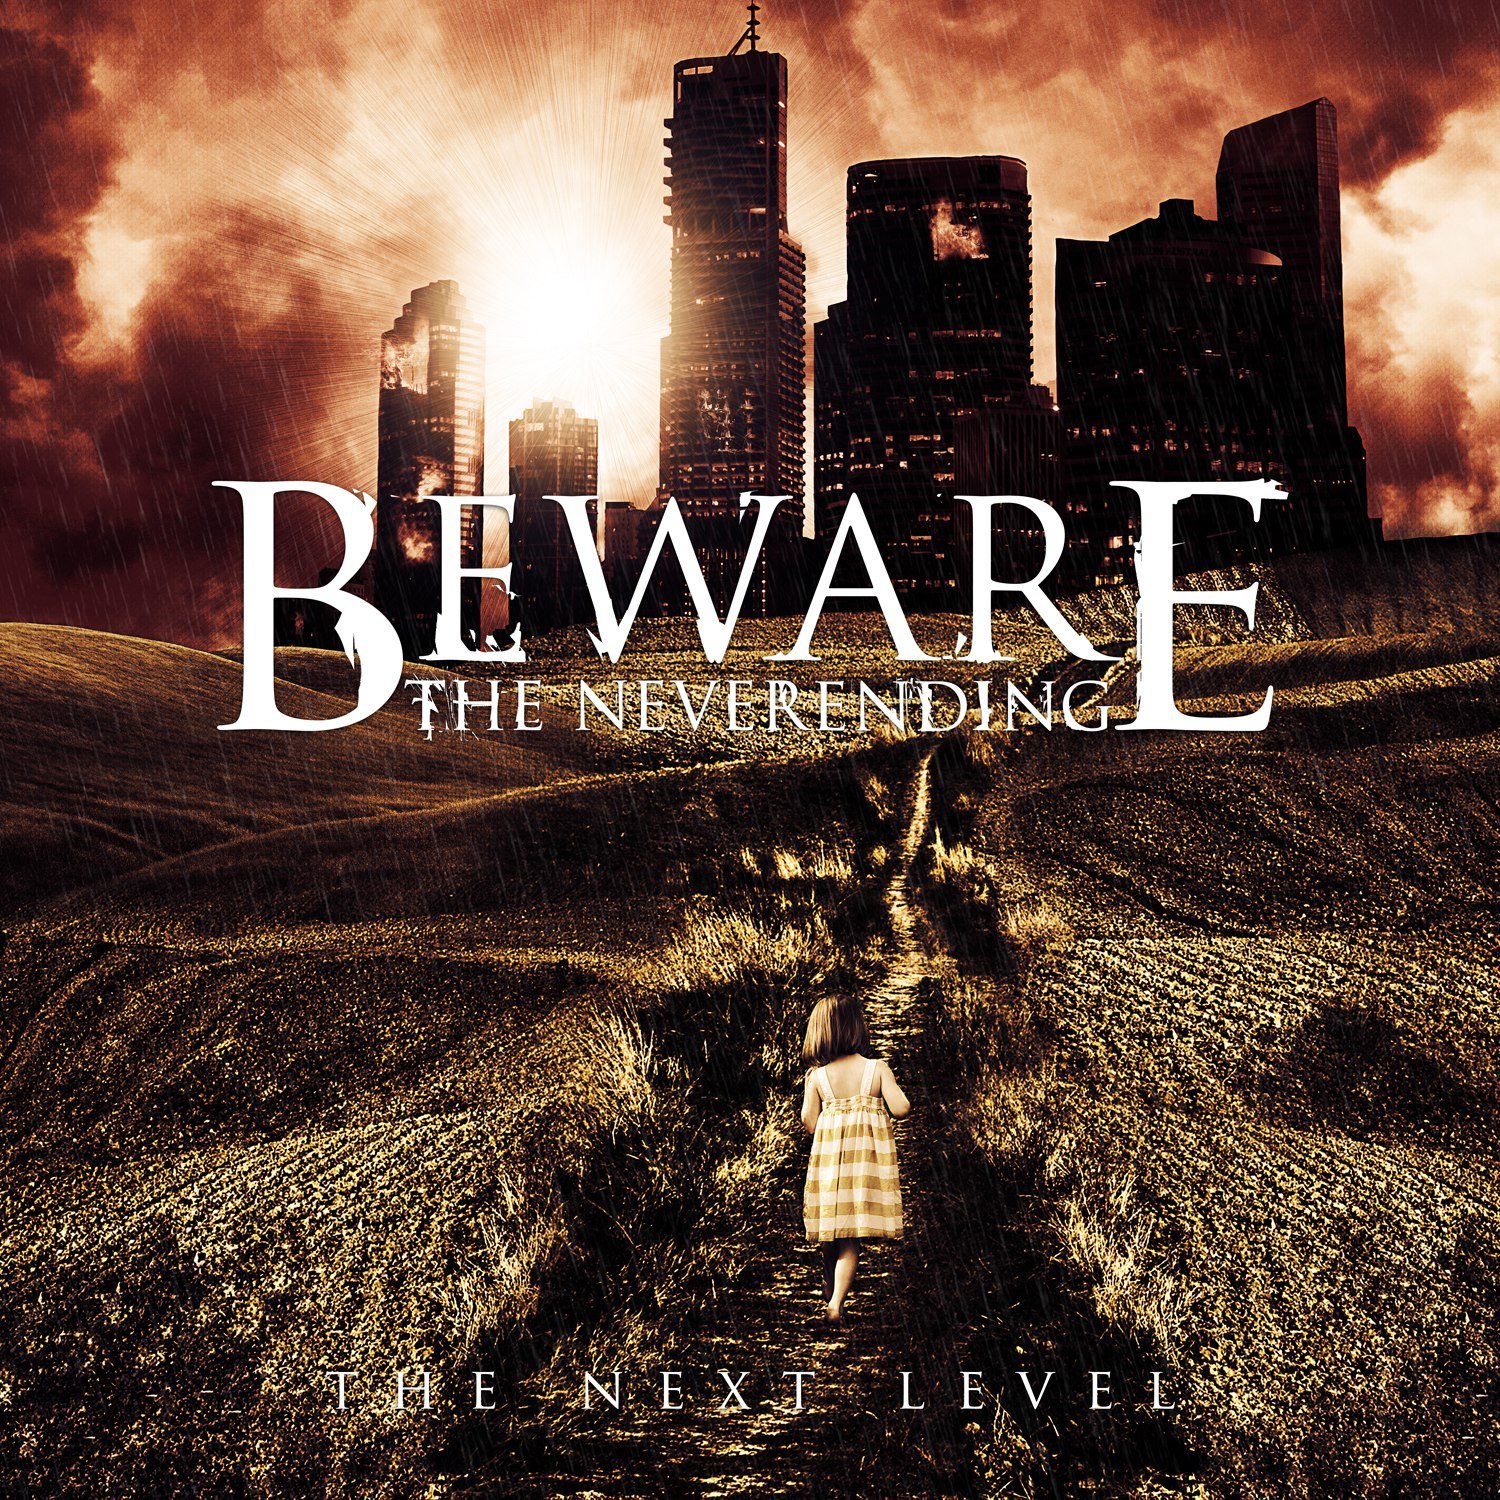 Beware the Neverending - The Next Level (2011)